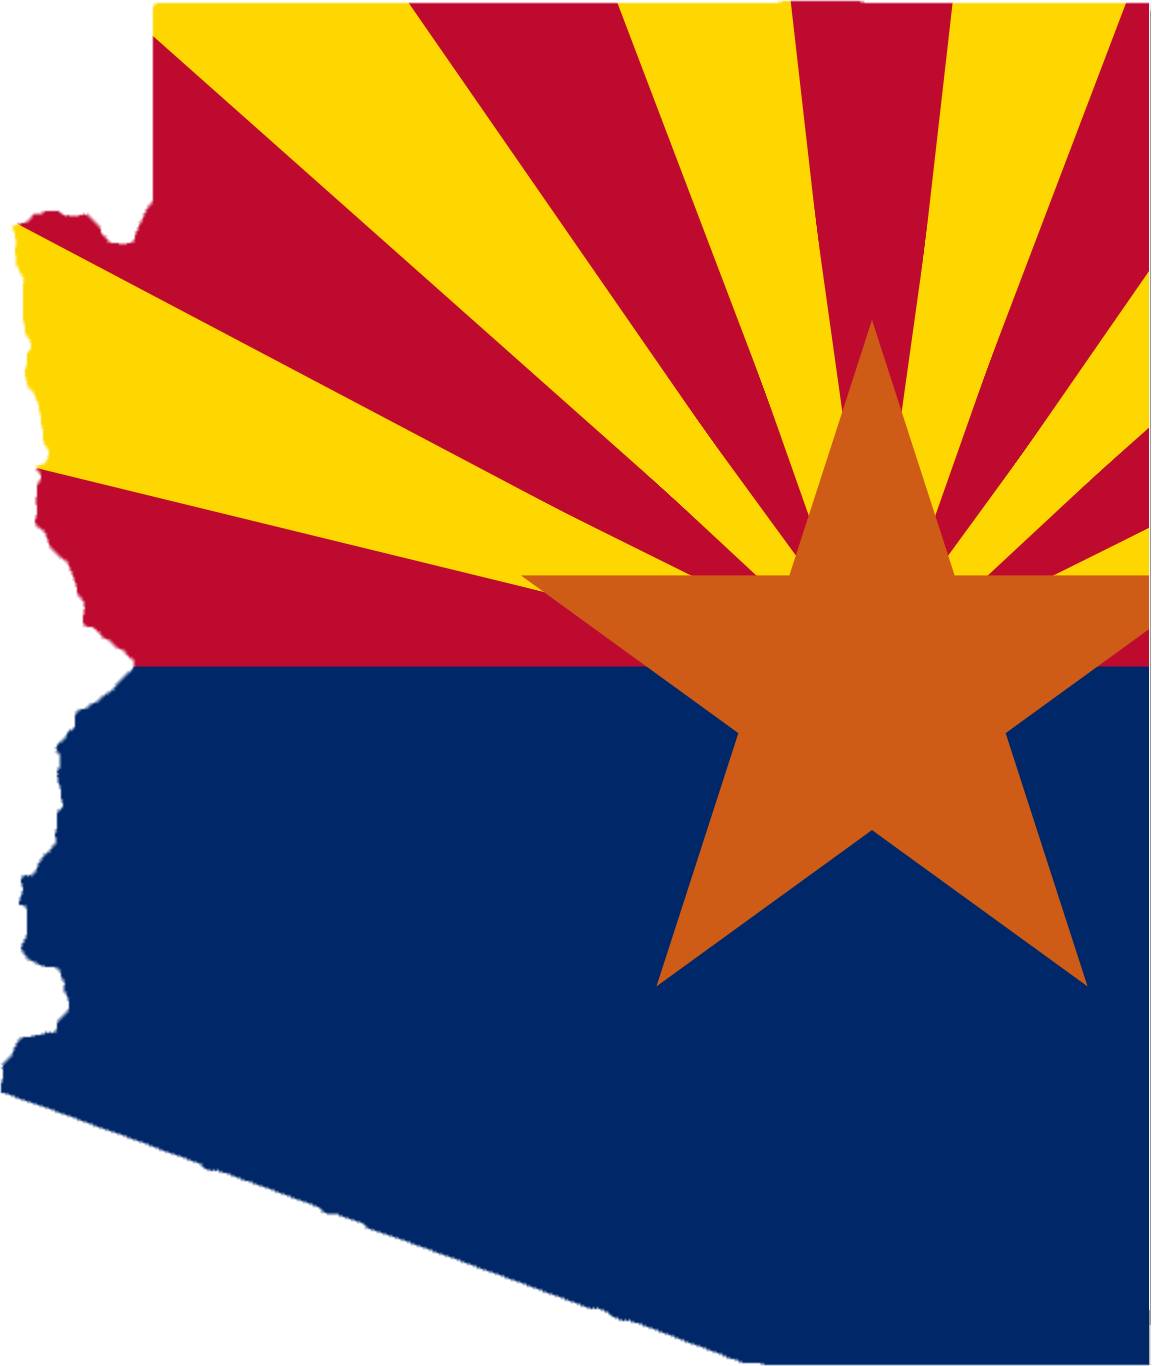 Superior Court Judge Rules Arizona's Legalization Initiative Can Appear on November Ballot